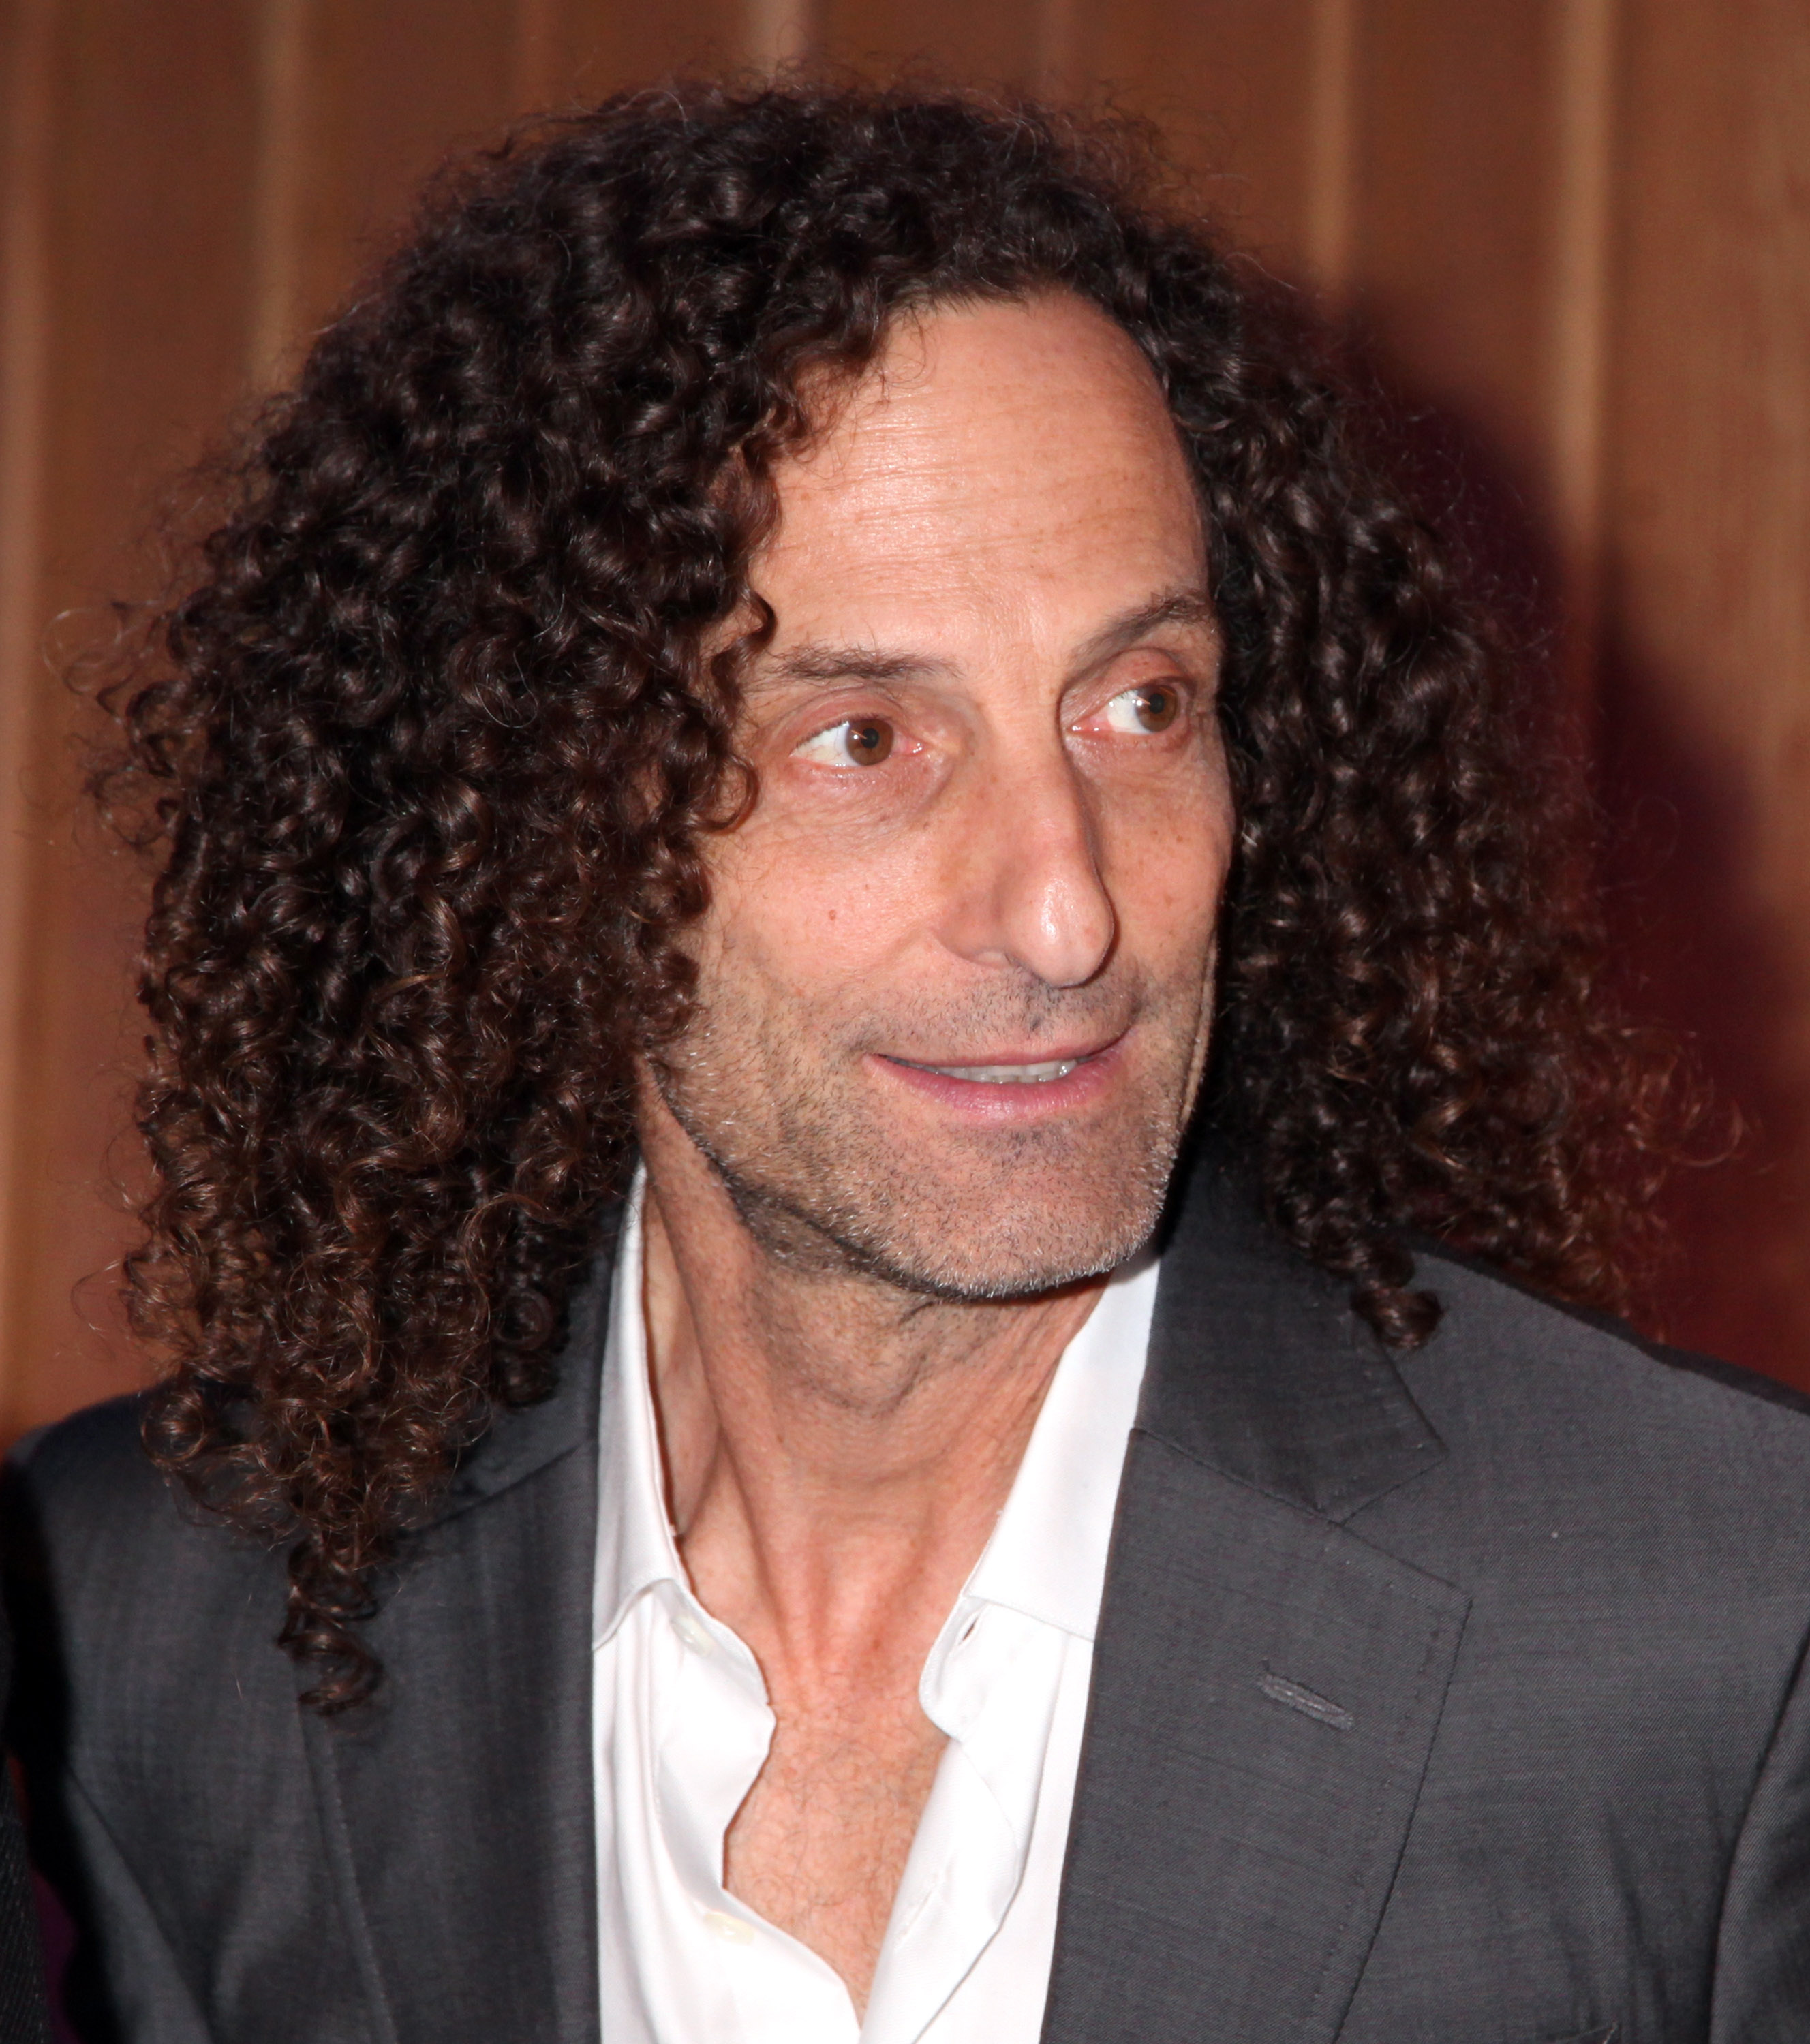 Musician Kenny G at Capitol Records Studio on December 17, 2014 in Hollywood, California.